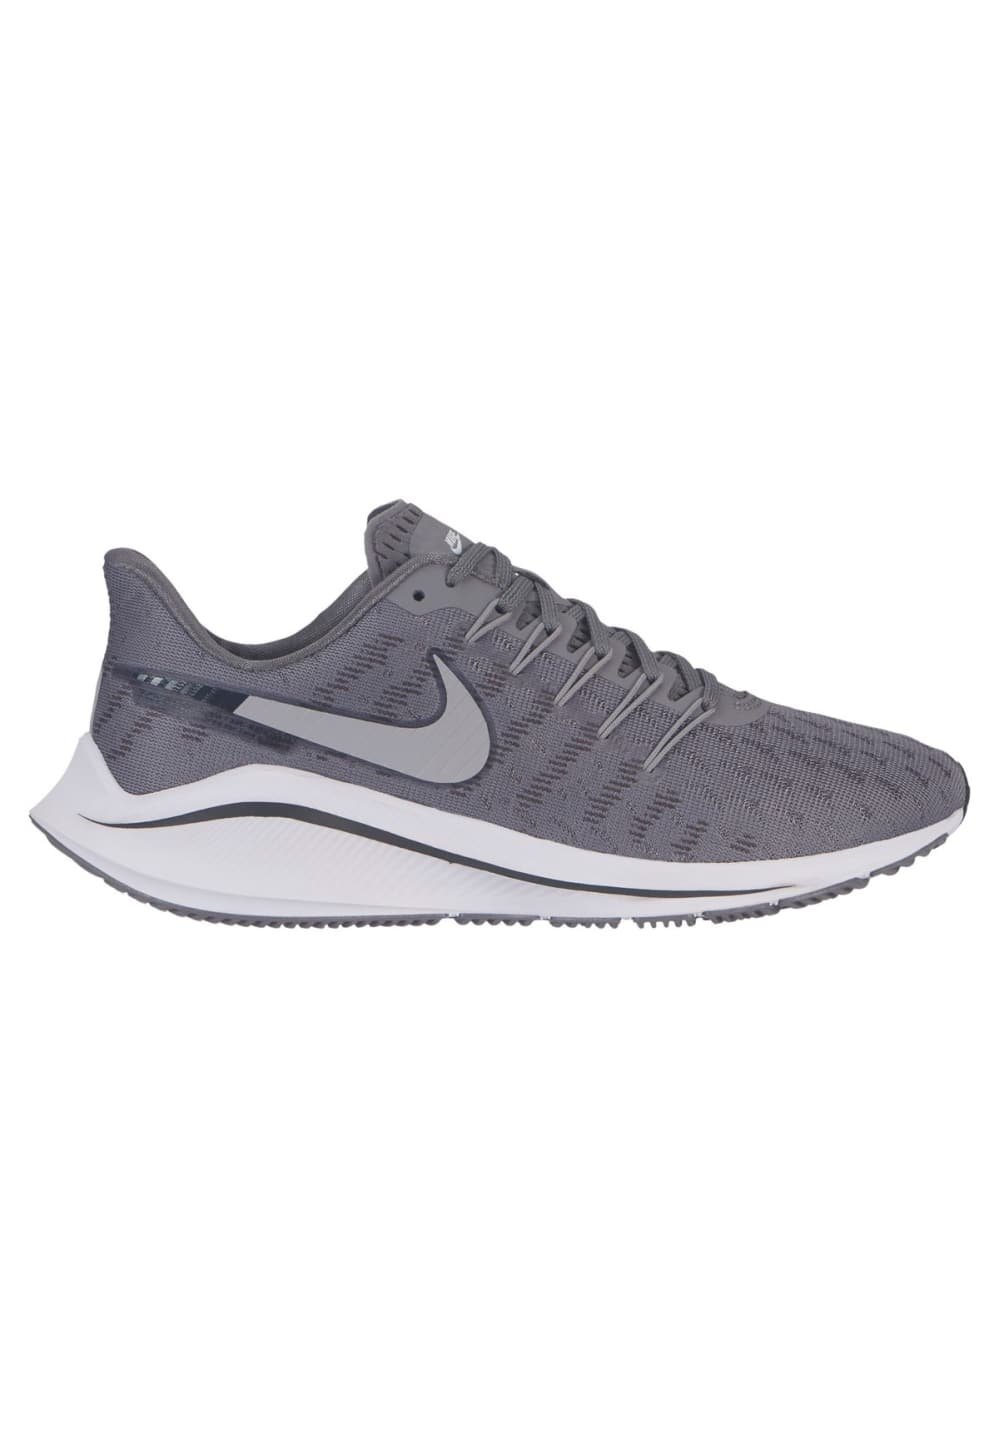 newest 4b5e4 9d5e5 Nike Air Zoom Vomero 15 - Running shoes for Women - Grey   21RUN